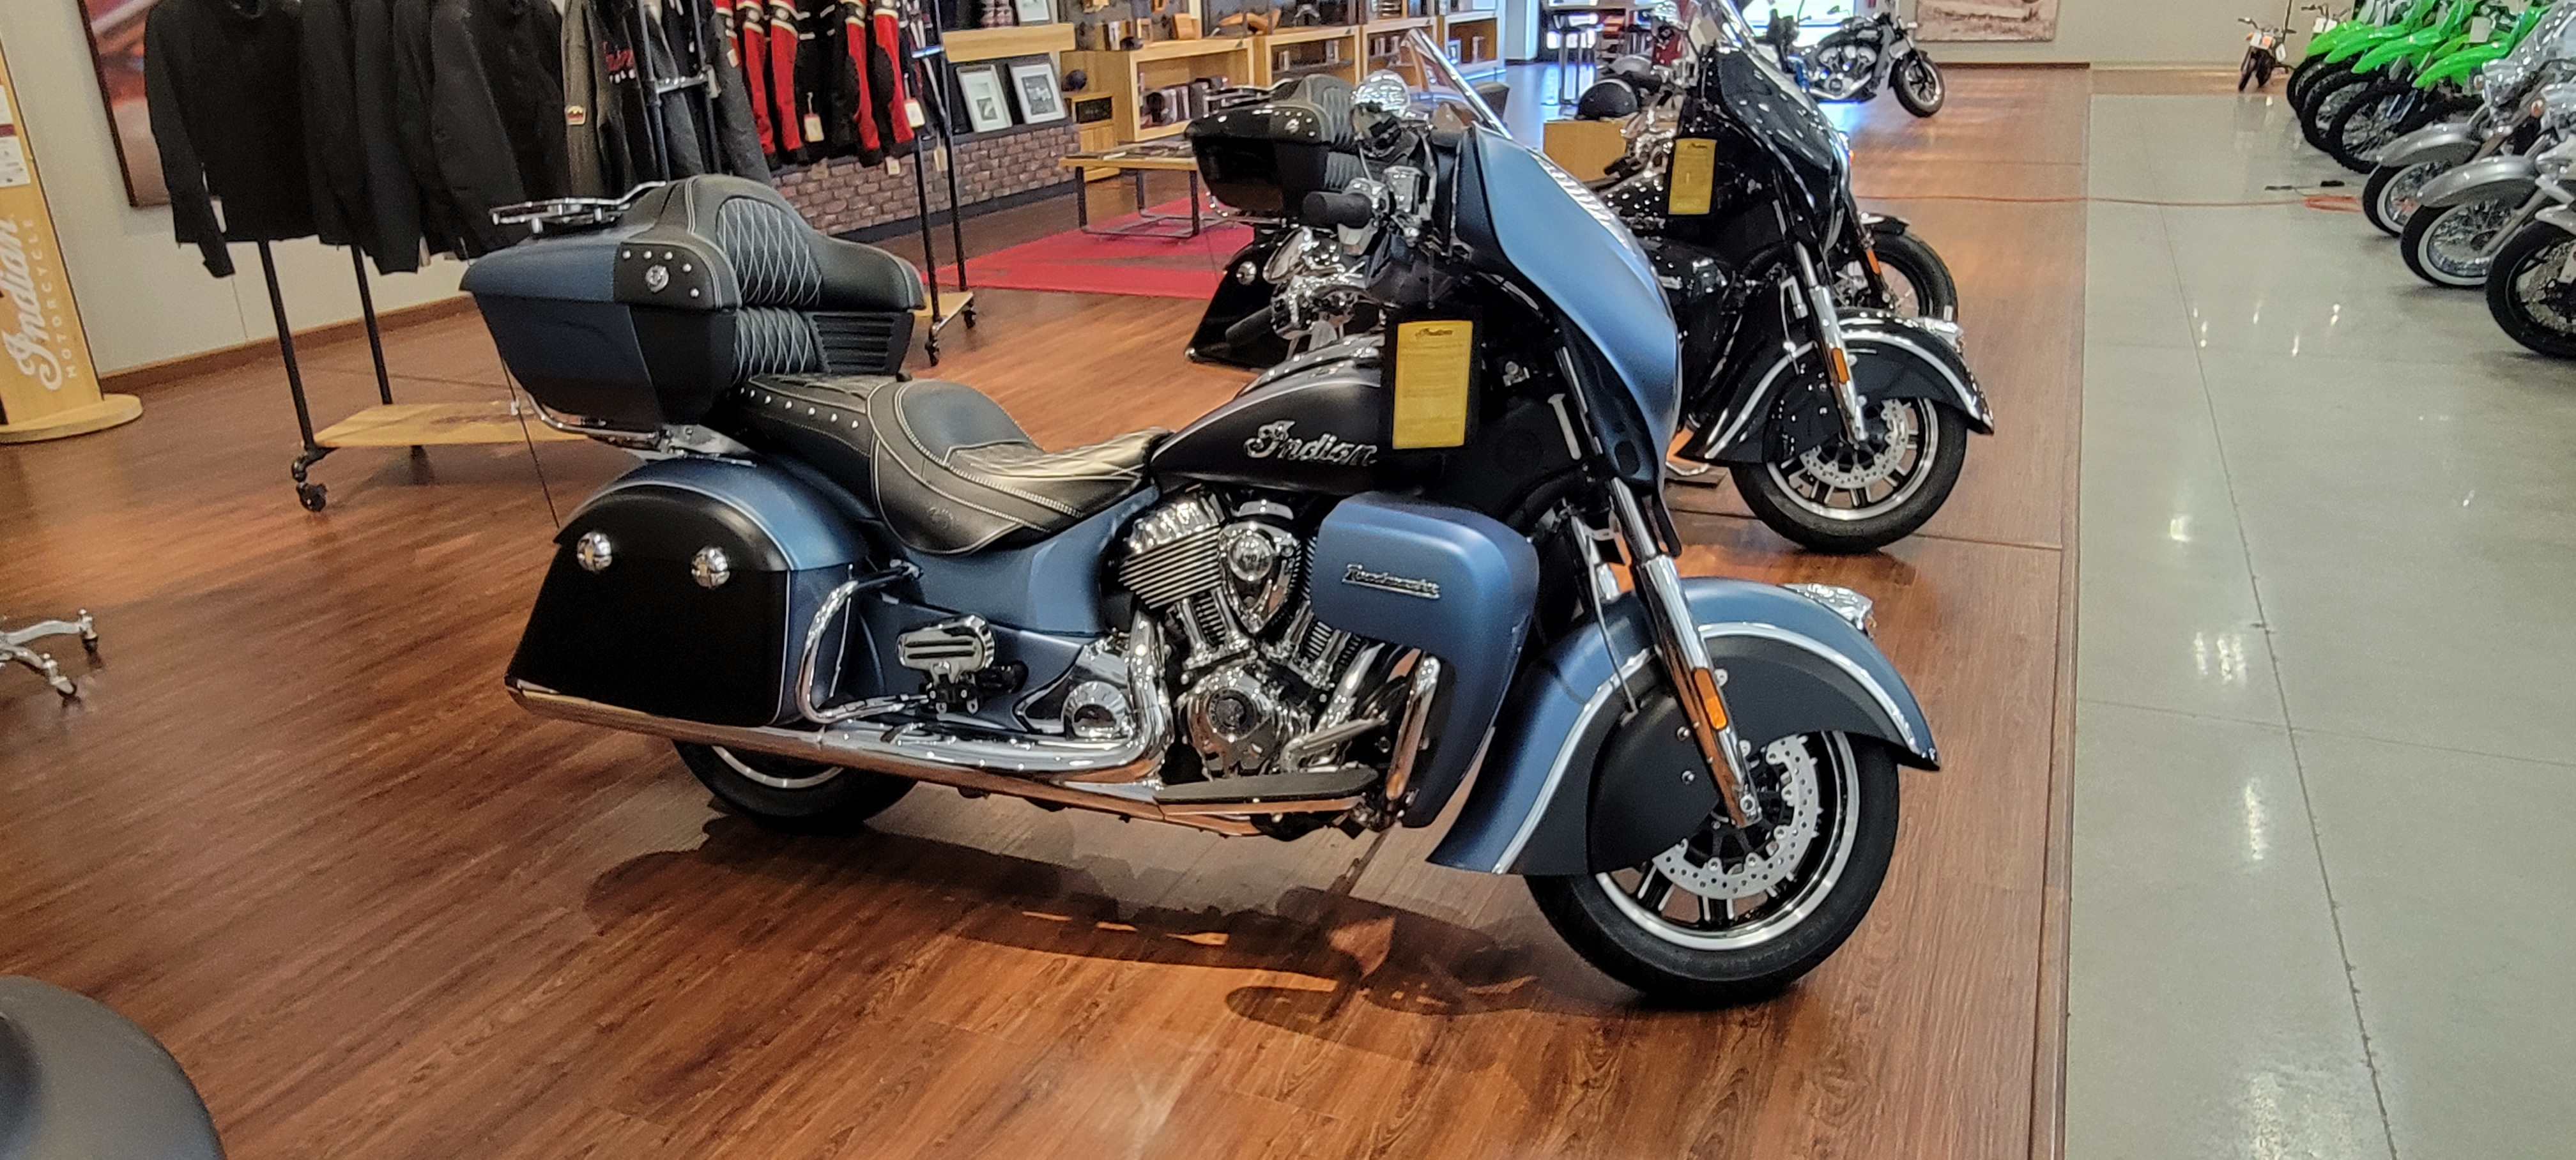 2021 Indian Roadmaster Base at Brenny's Motorcycle Clinic, Bettendorf, IA 52722